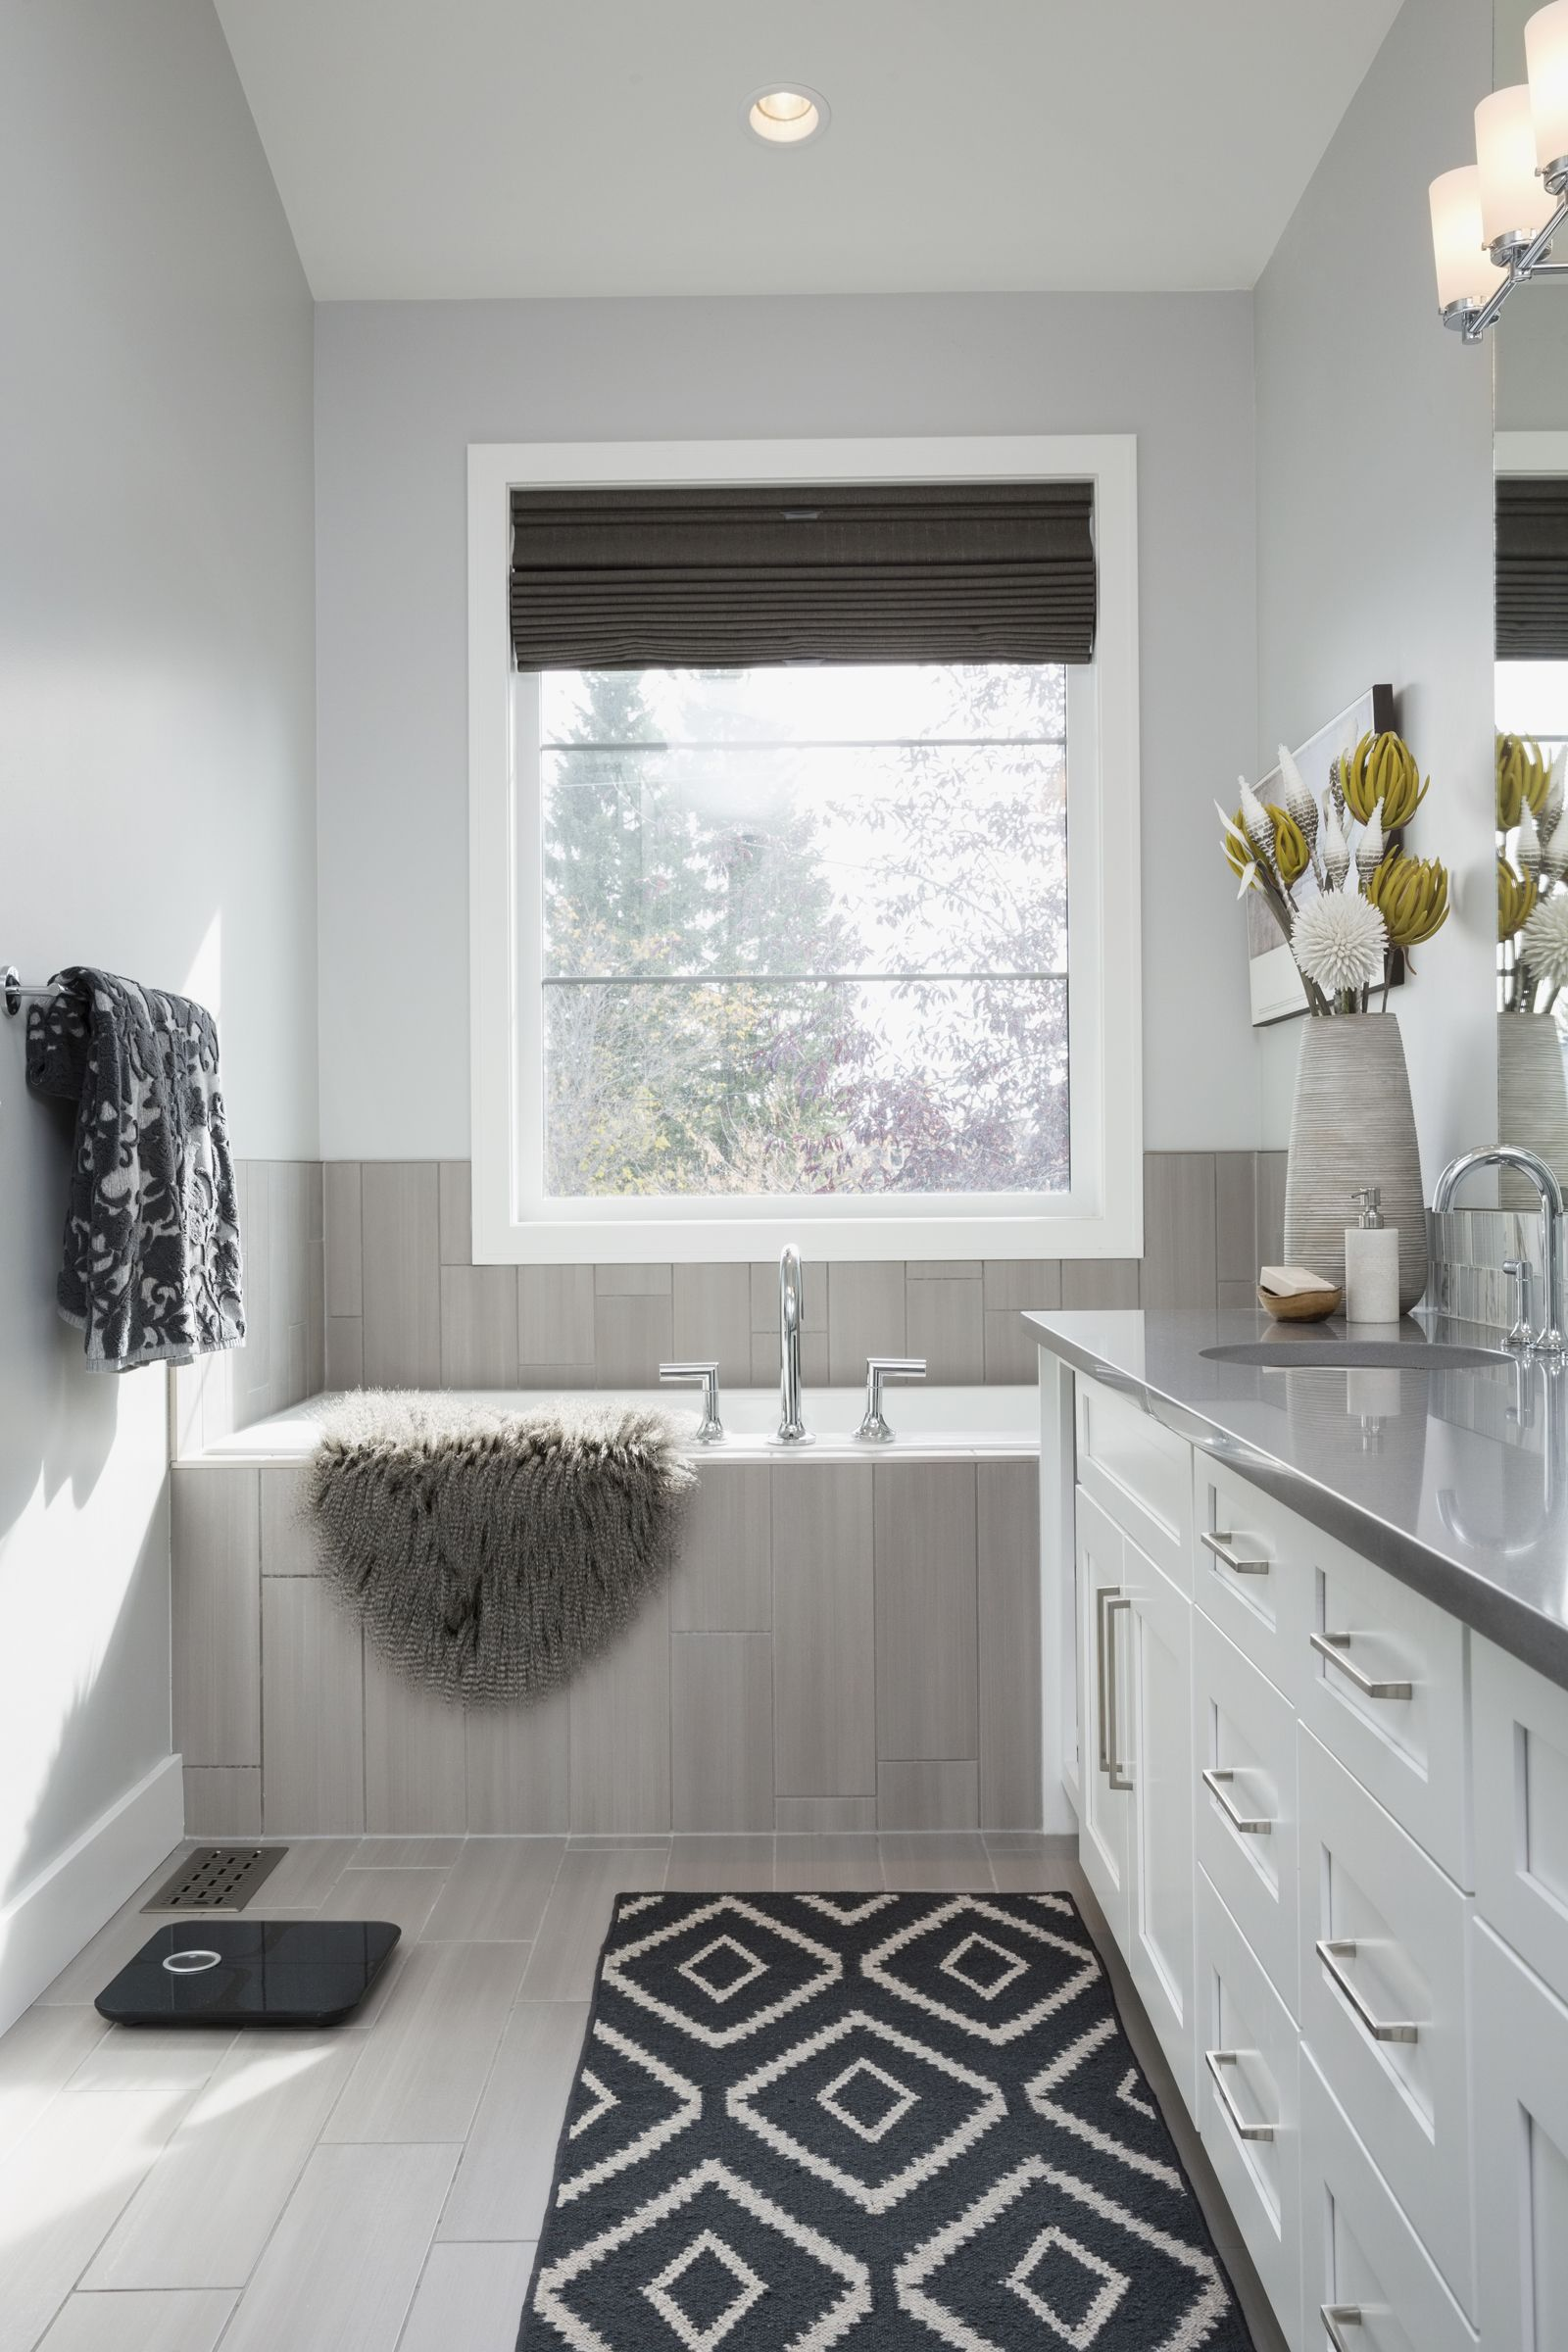 Joanna Gaines Reveals Her 5 Favorite Paint Colors | White tiles and ...